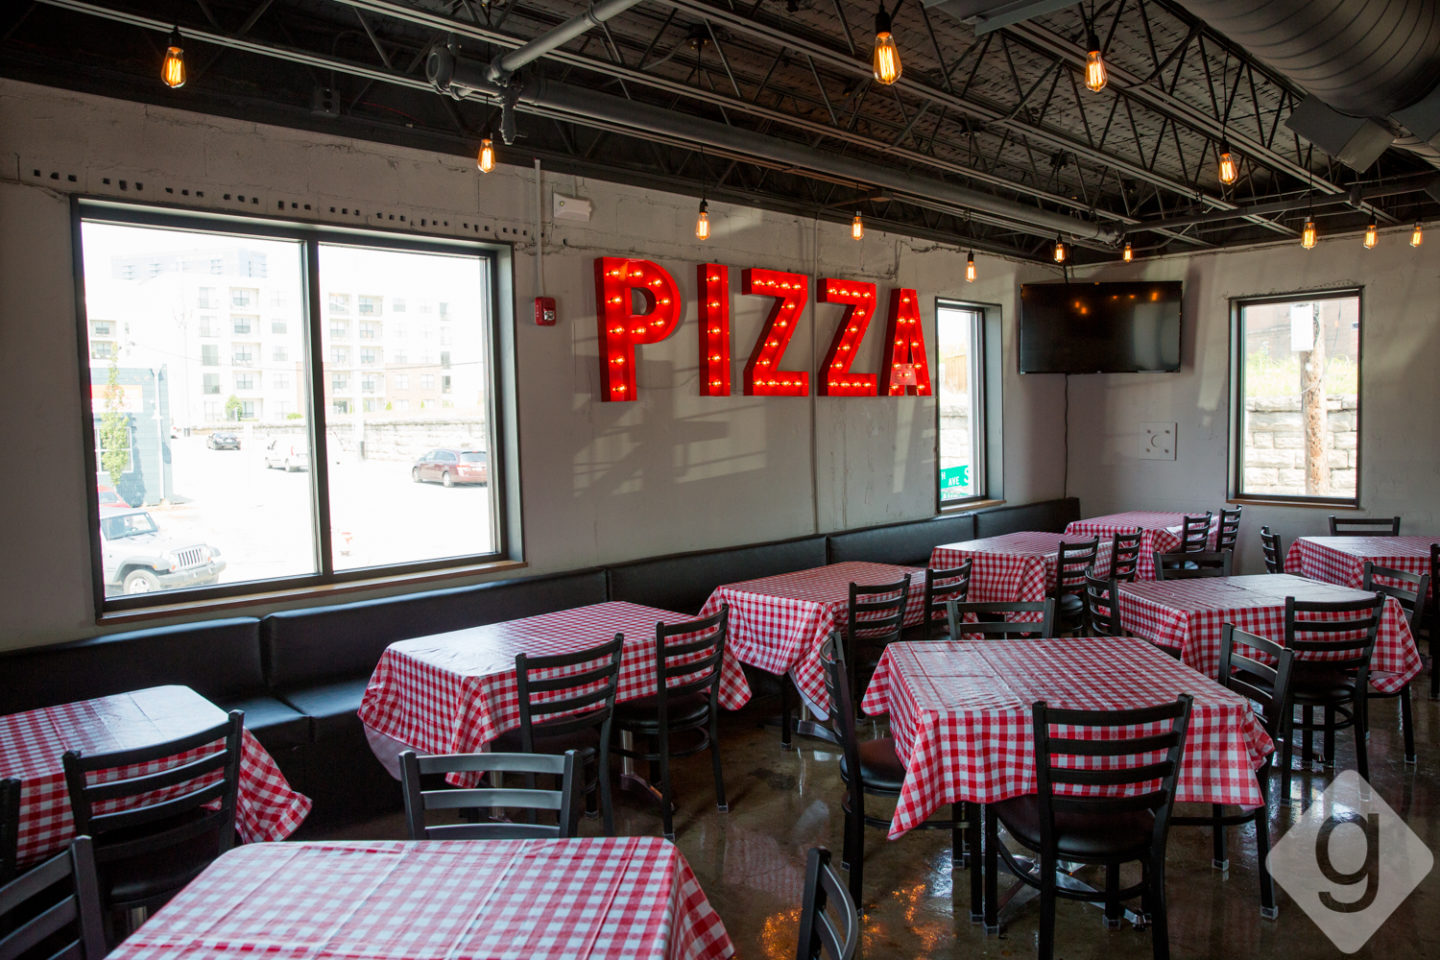 The Pizzas Revolve Like A Merry Go Round Providing Balanced Rapid Baking Without Frequent Manual Rotating Of By Chef